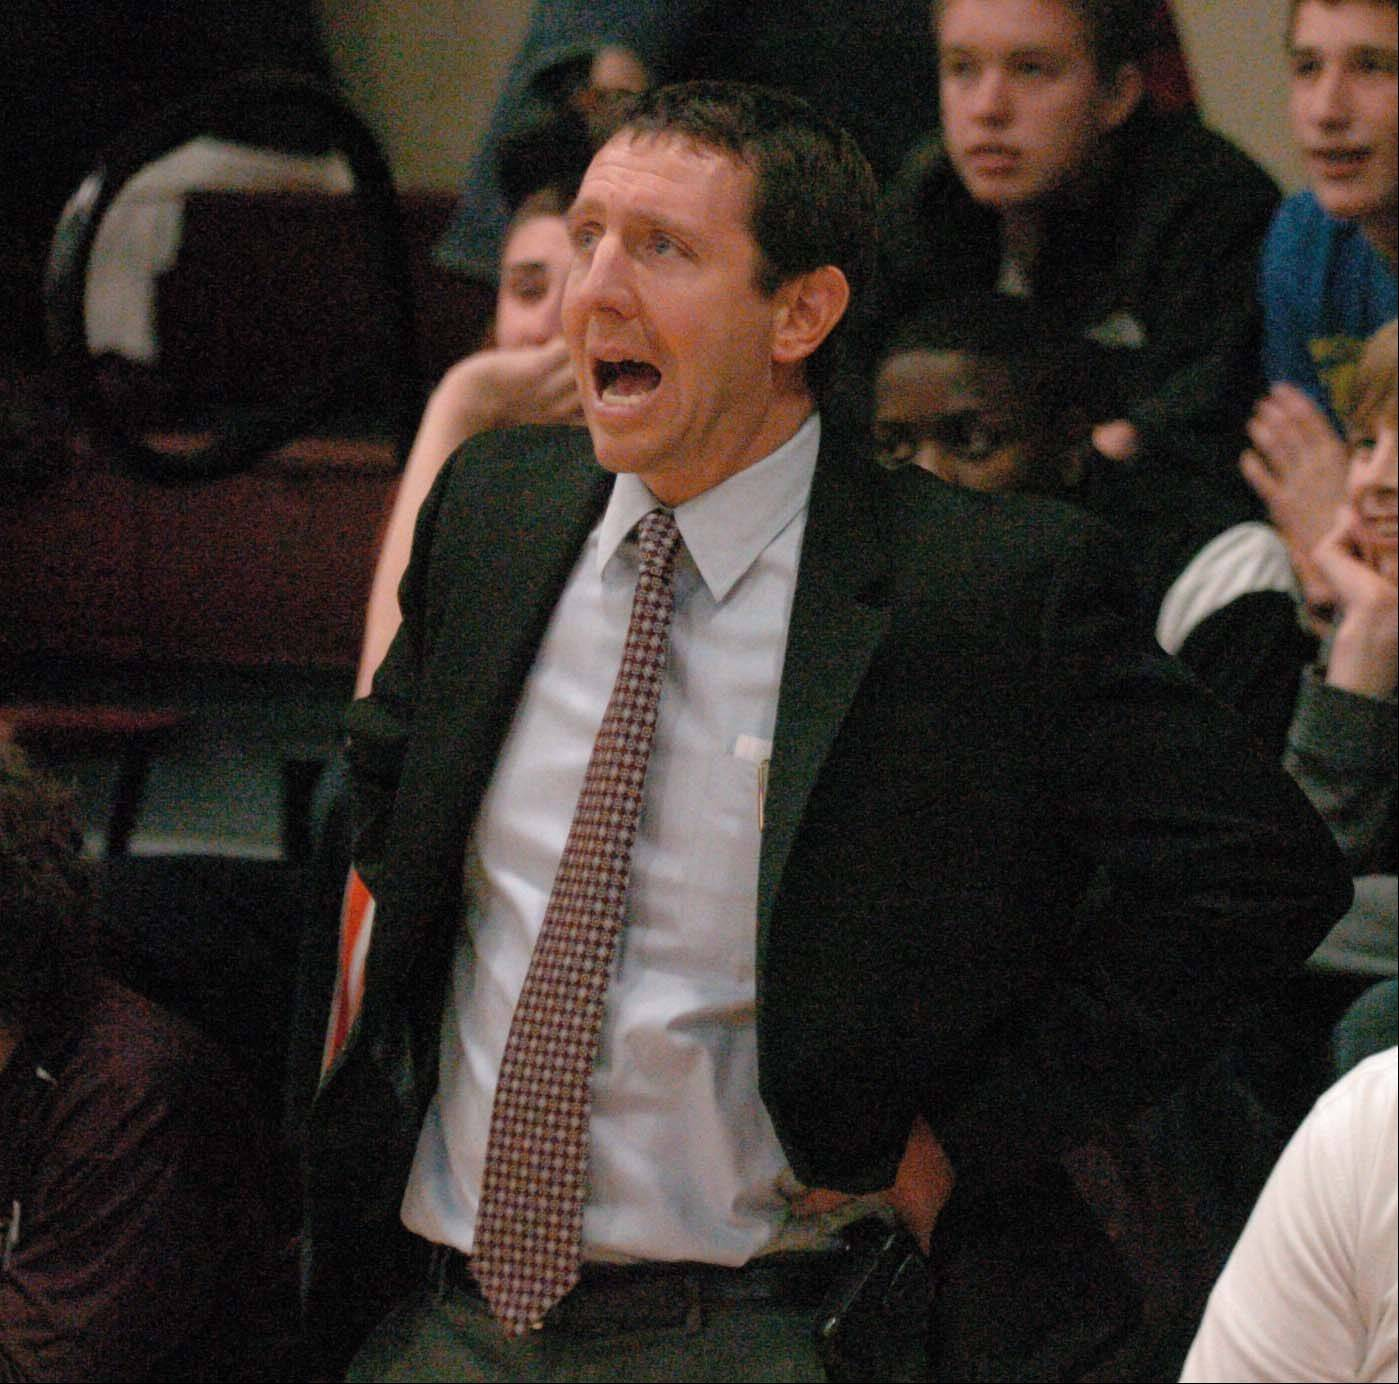 Paul Ferguson announced Tuesday he is leaving Wheaton Academy at the end of this school year to become an assistant coach for Wheaton College's men's basketball team.